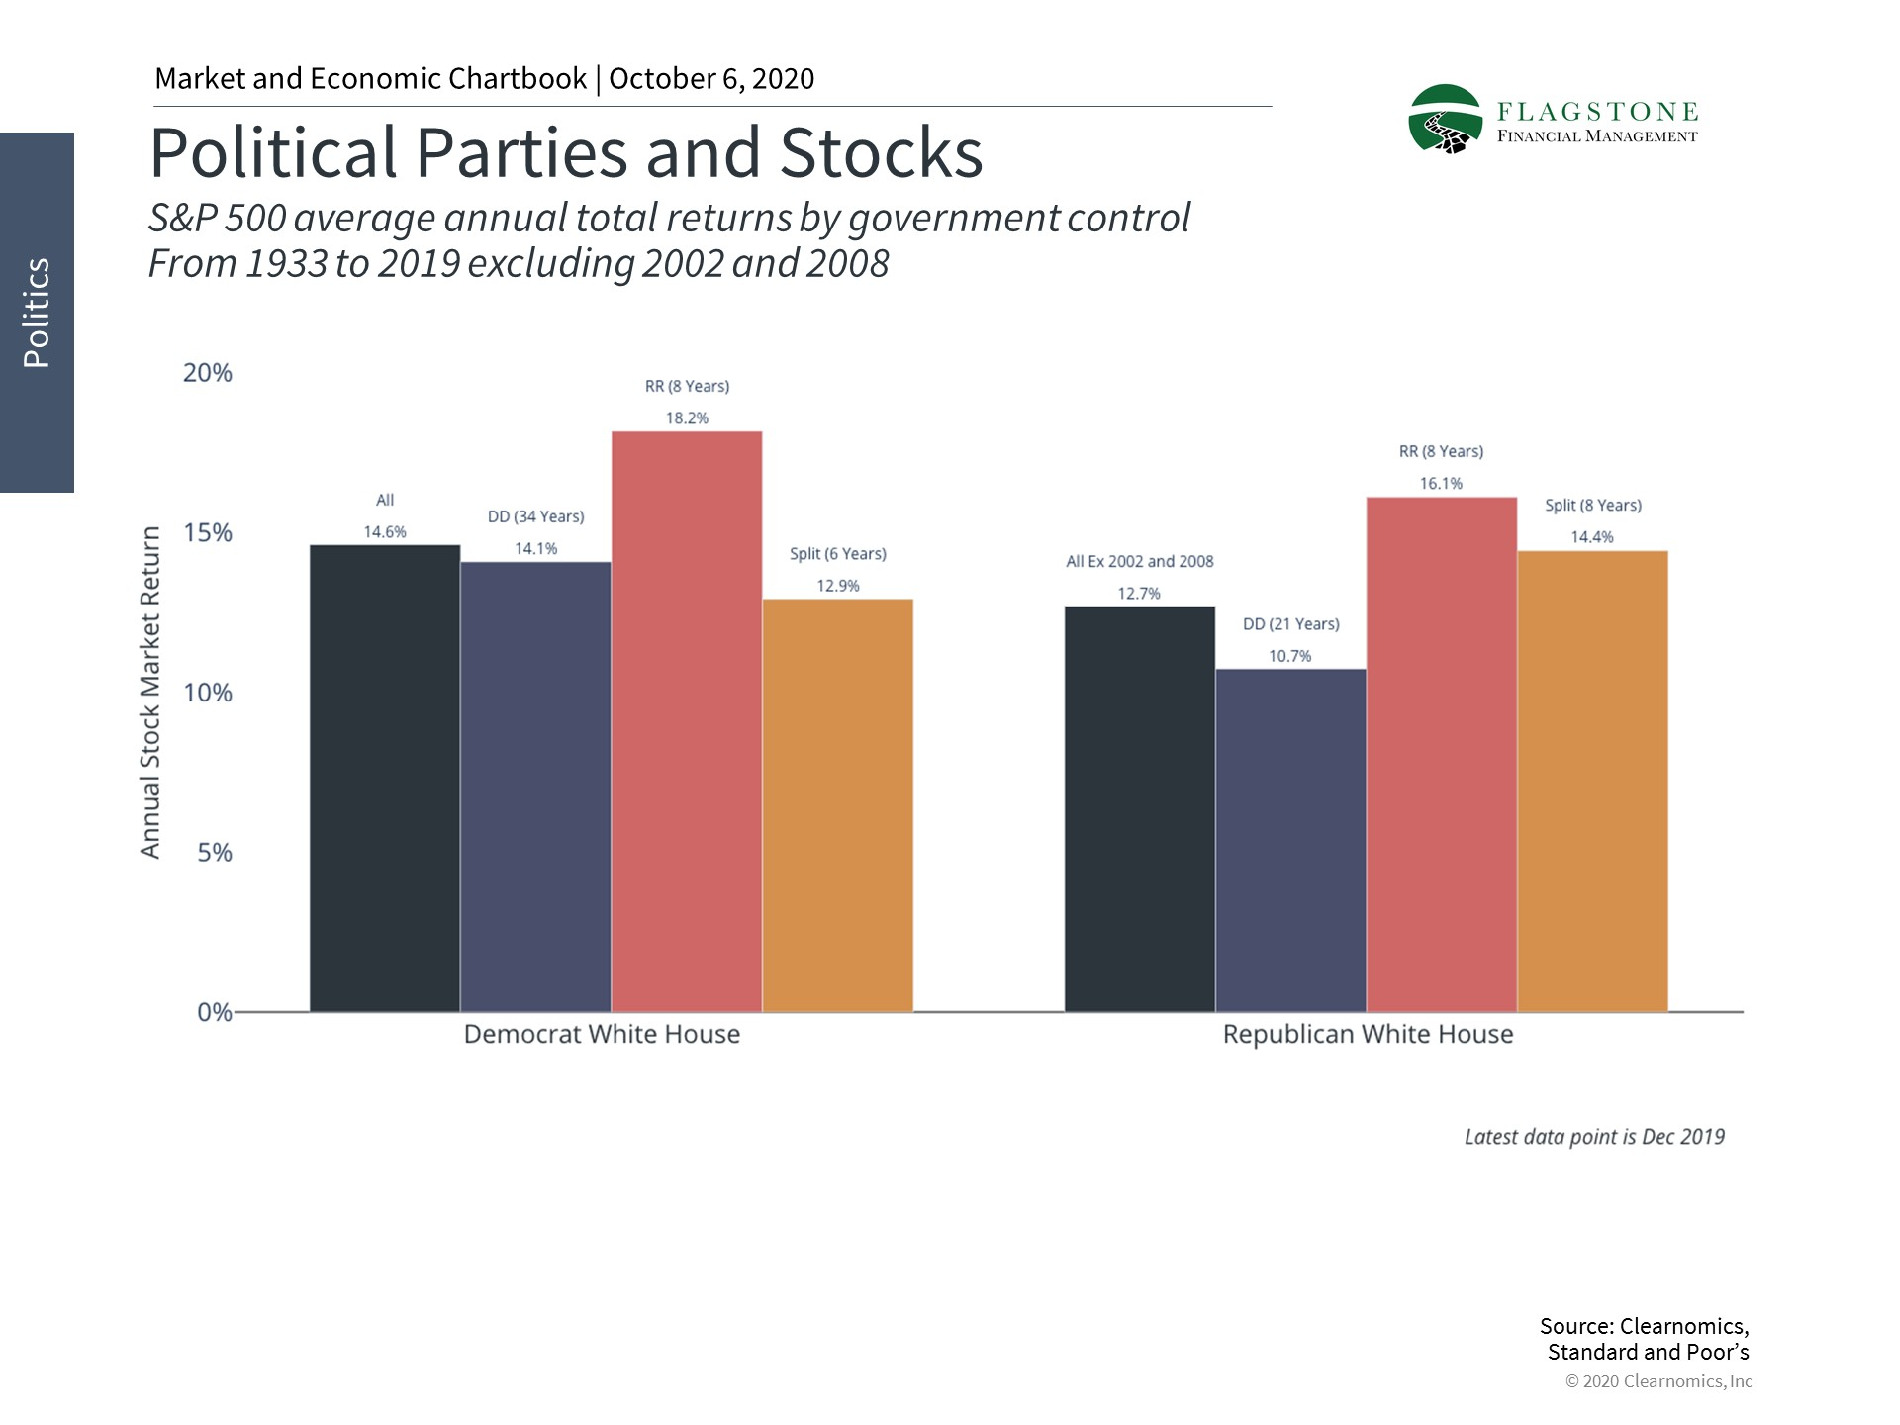 Chart showing political parties and stocks